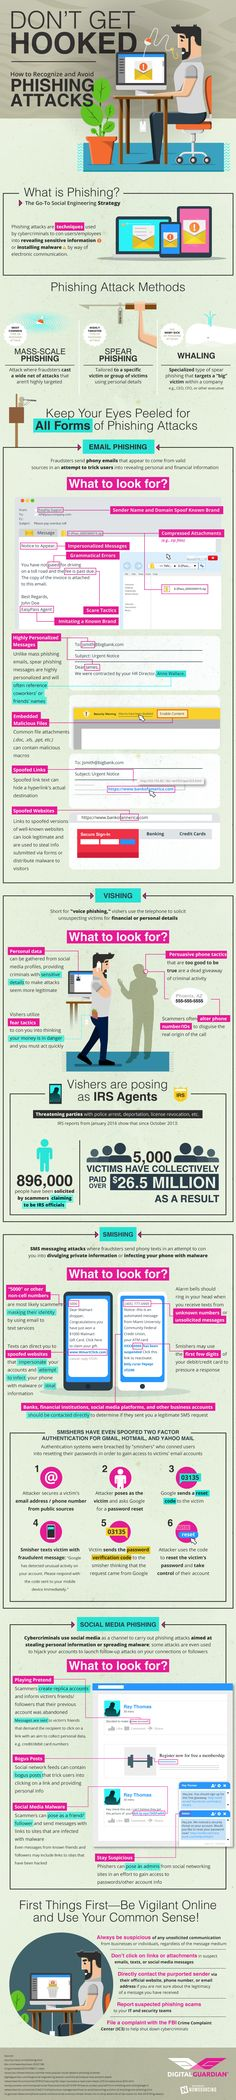 How to save yourself from a phishing attack [Infographic]